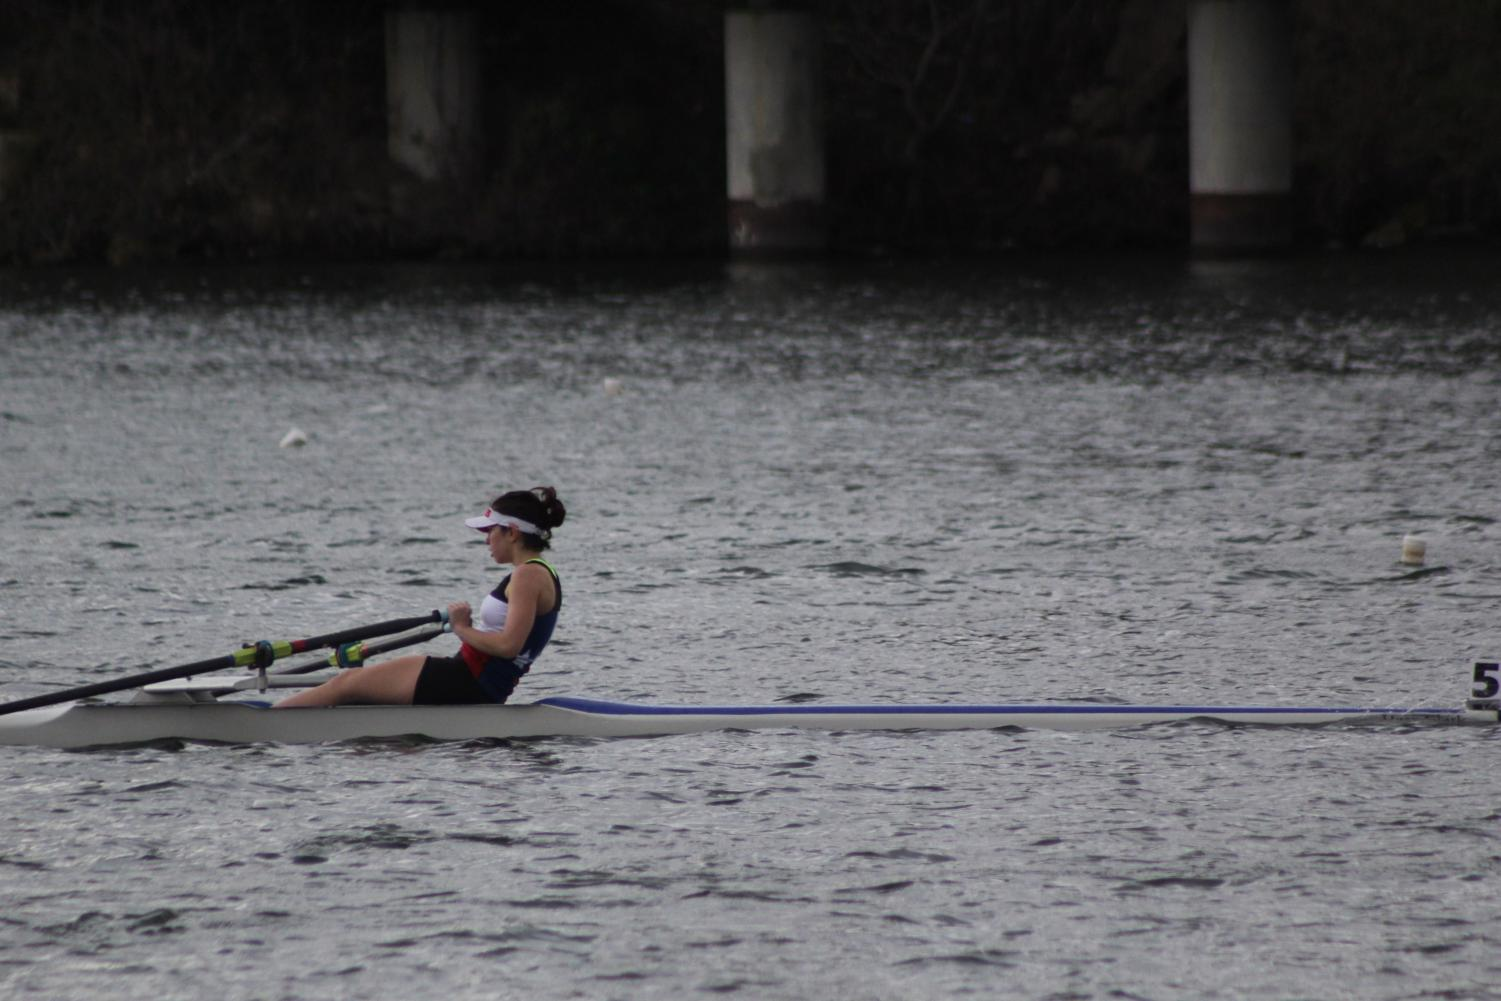 Dorothy Childs of the Texas Rowing Center rows on Lady Bird Lake on March 4. Rowing is one of several off-campus sports that is eligible for off-campus PE credit through AISD. Photo by Sarah Slaten.